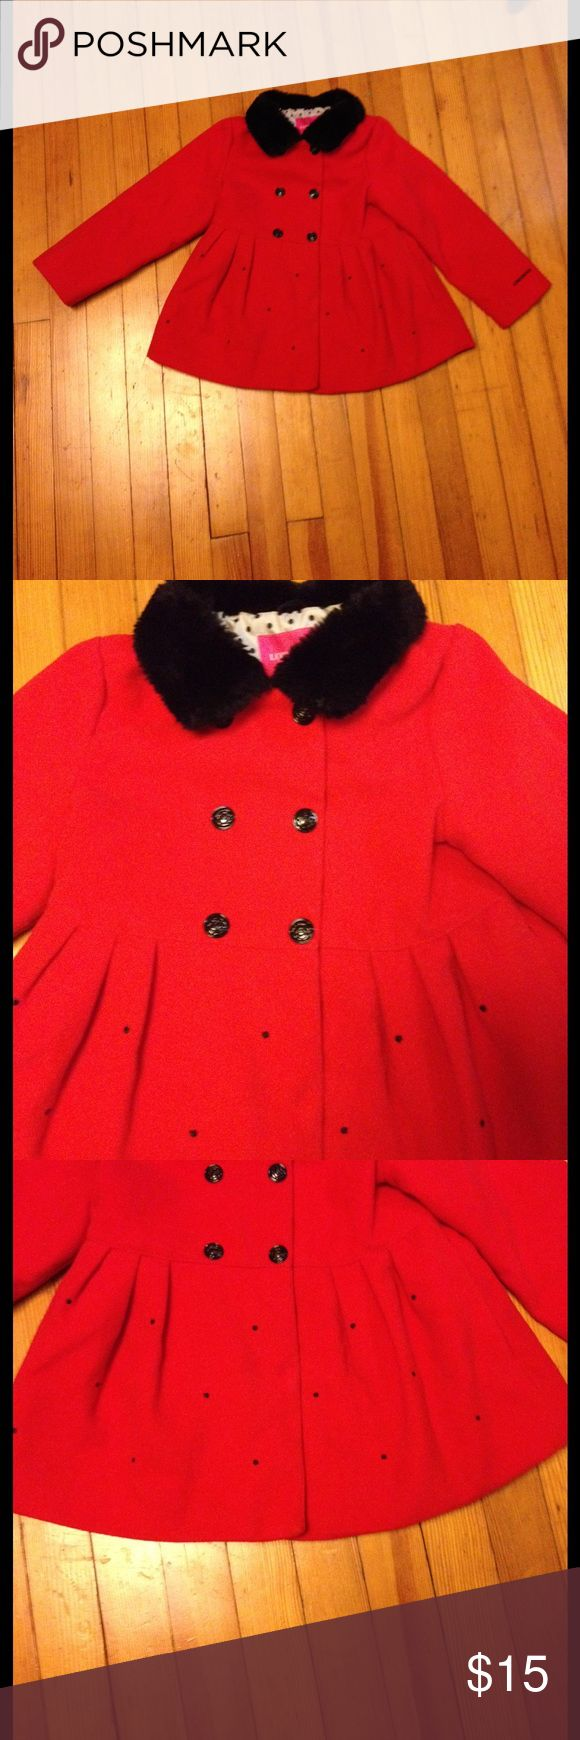 London Fog girl's coat London Fog girl's coat. Red with black faux fur collar and embroidered dots on front and back sweep.  EUC. Shell:  88% Polyester 10% Rayon 2% spandex.  Lining 100% Polyester. Size 6x London Fog Jackets & Coats